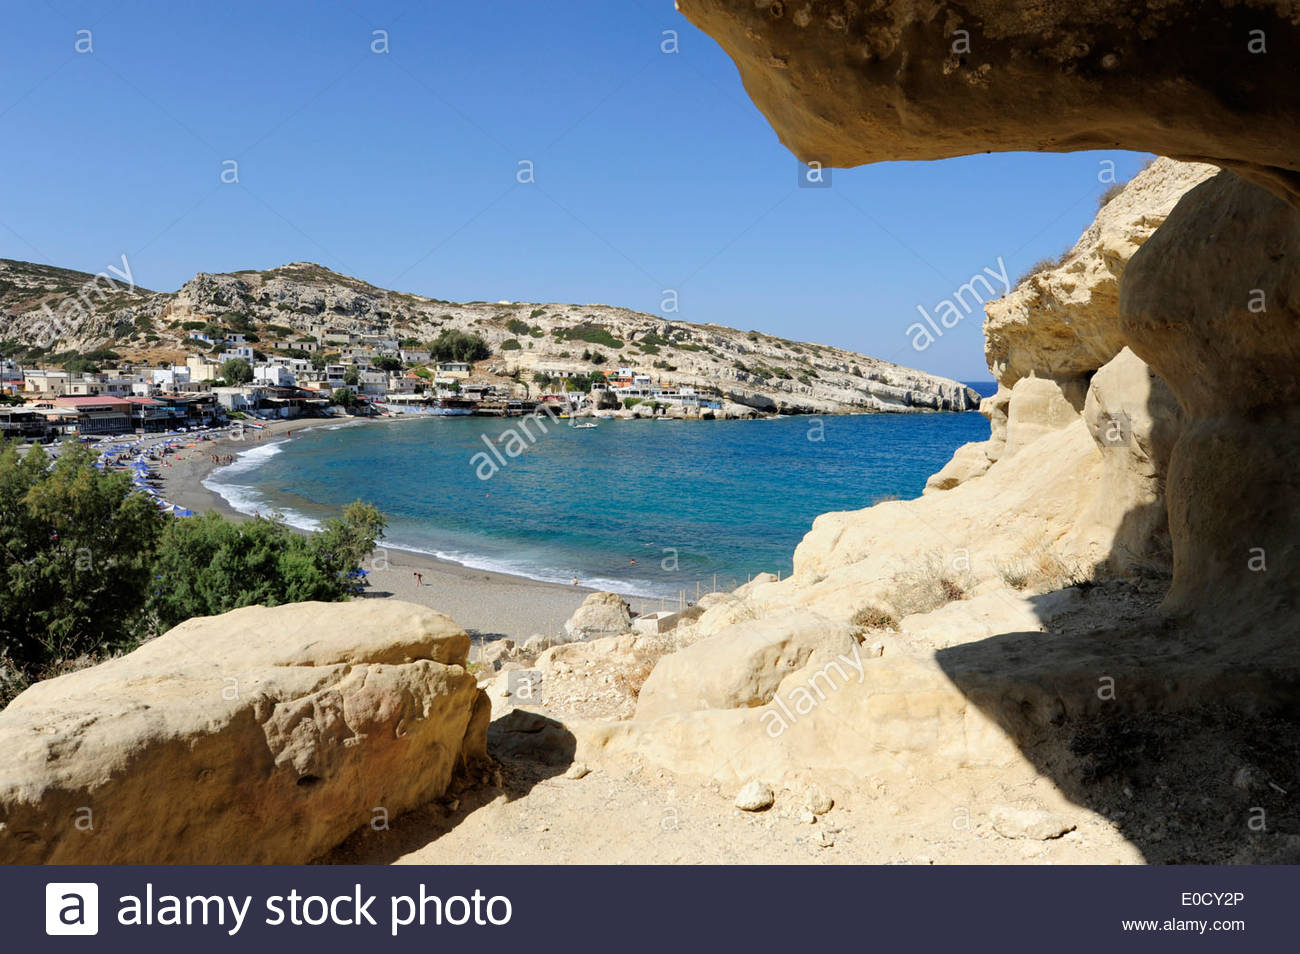 Prehistorical cave with view of the beach of Matala, a village on the south coast of the greek island Crete, Mediterranean Sea, - Stock Image